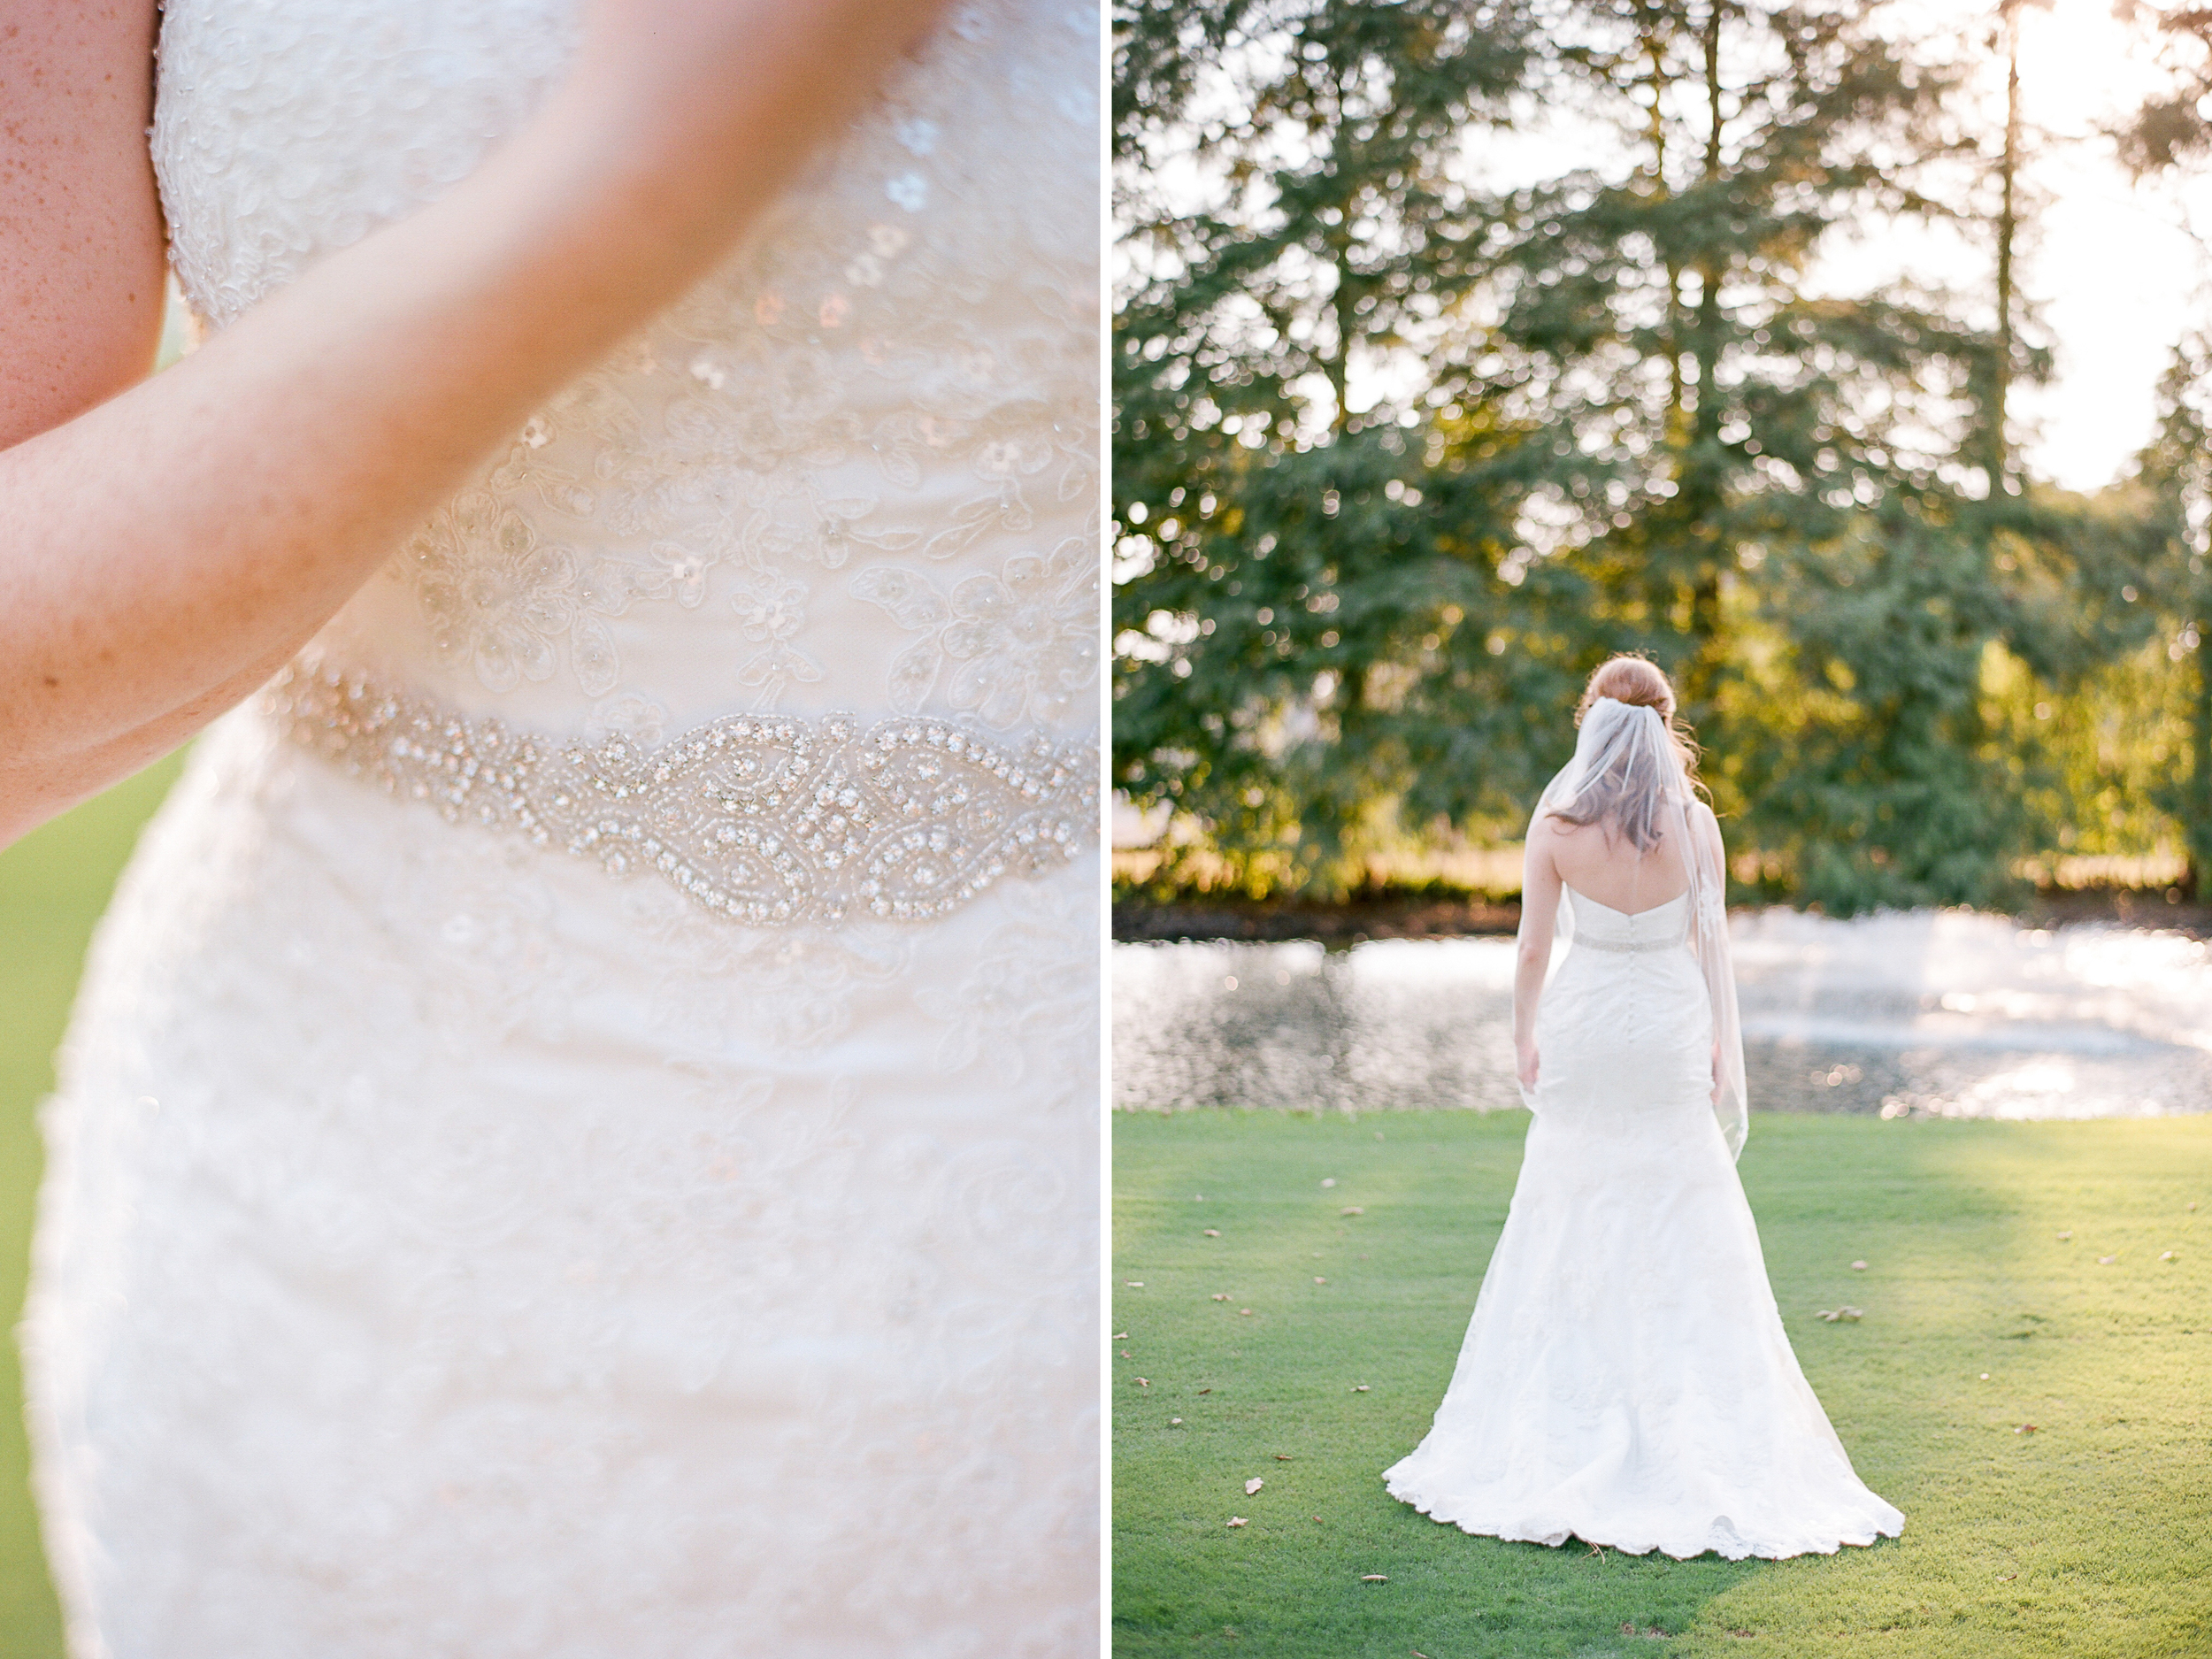 Dana-Fernandez-Photography-Film-Wedding-Photography-Houston-Bridals-Houston-Country-Club-Photographer-103.jpg